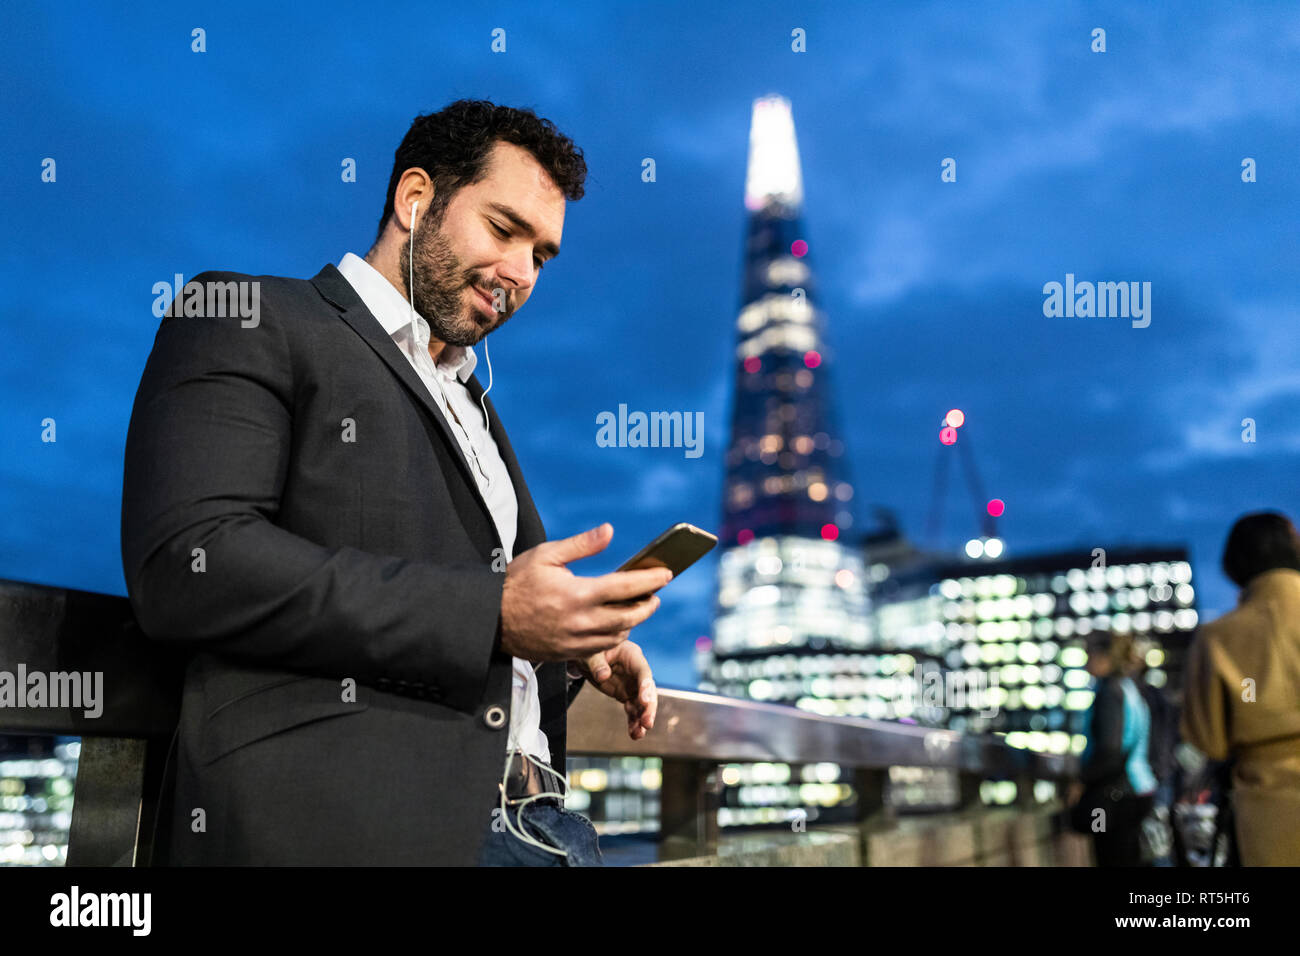 UK, London, businessman on the go checking his phone while commuting by night - Stock Image